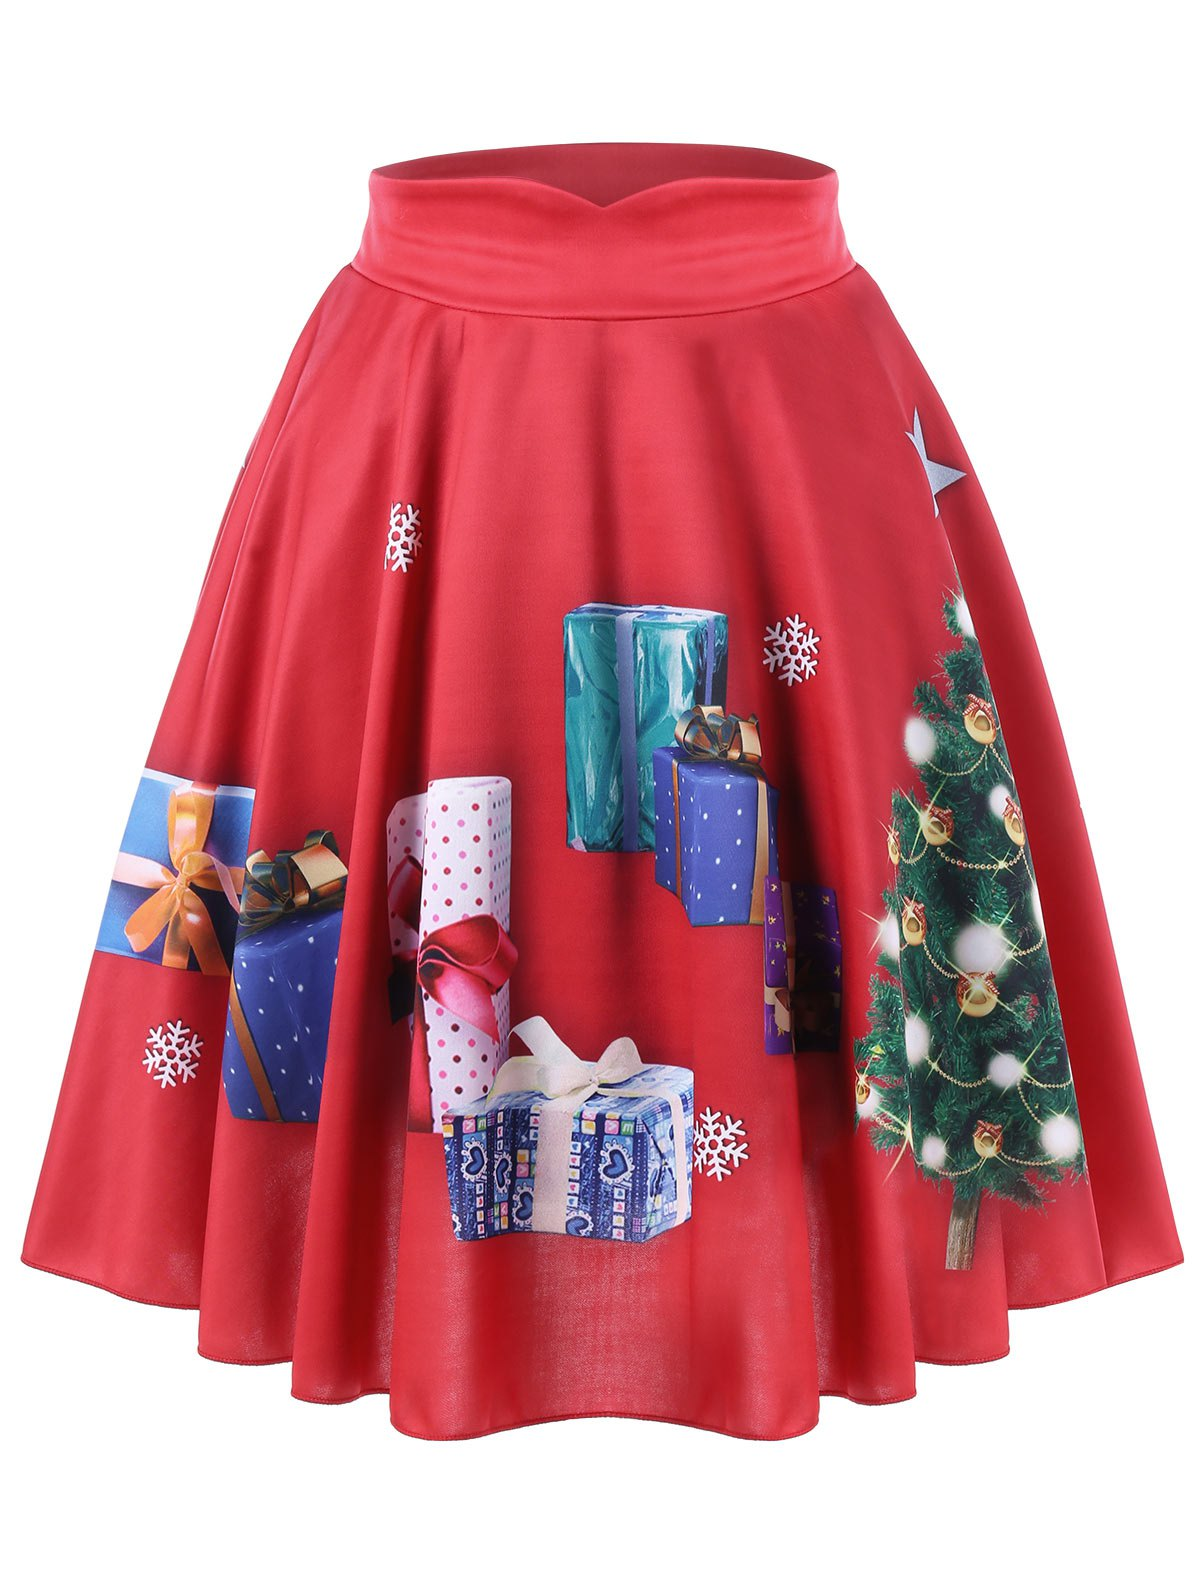 Shop Plus Size Christmas Tree and Gift Print Flared Skirt